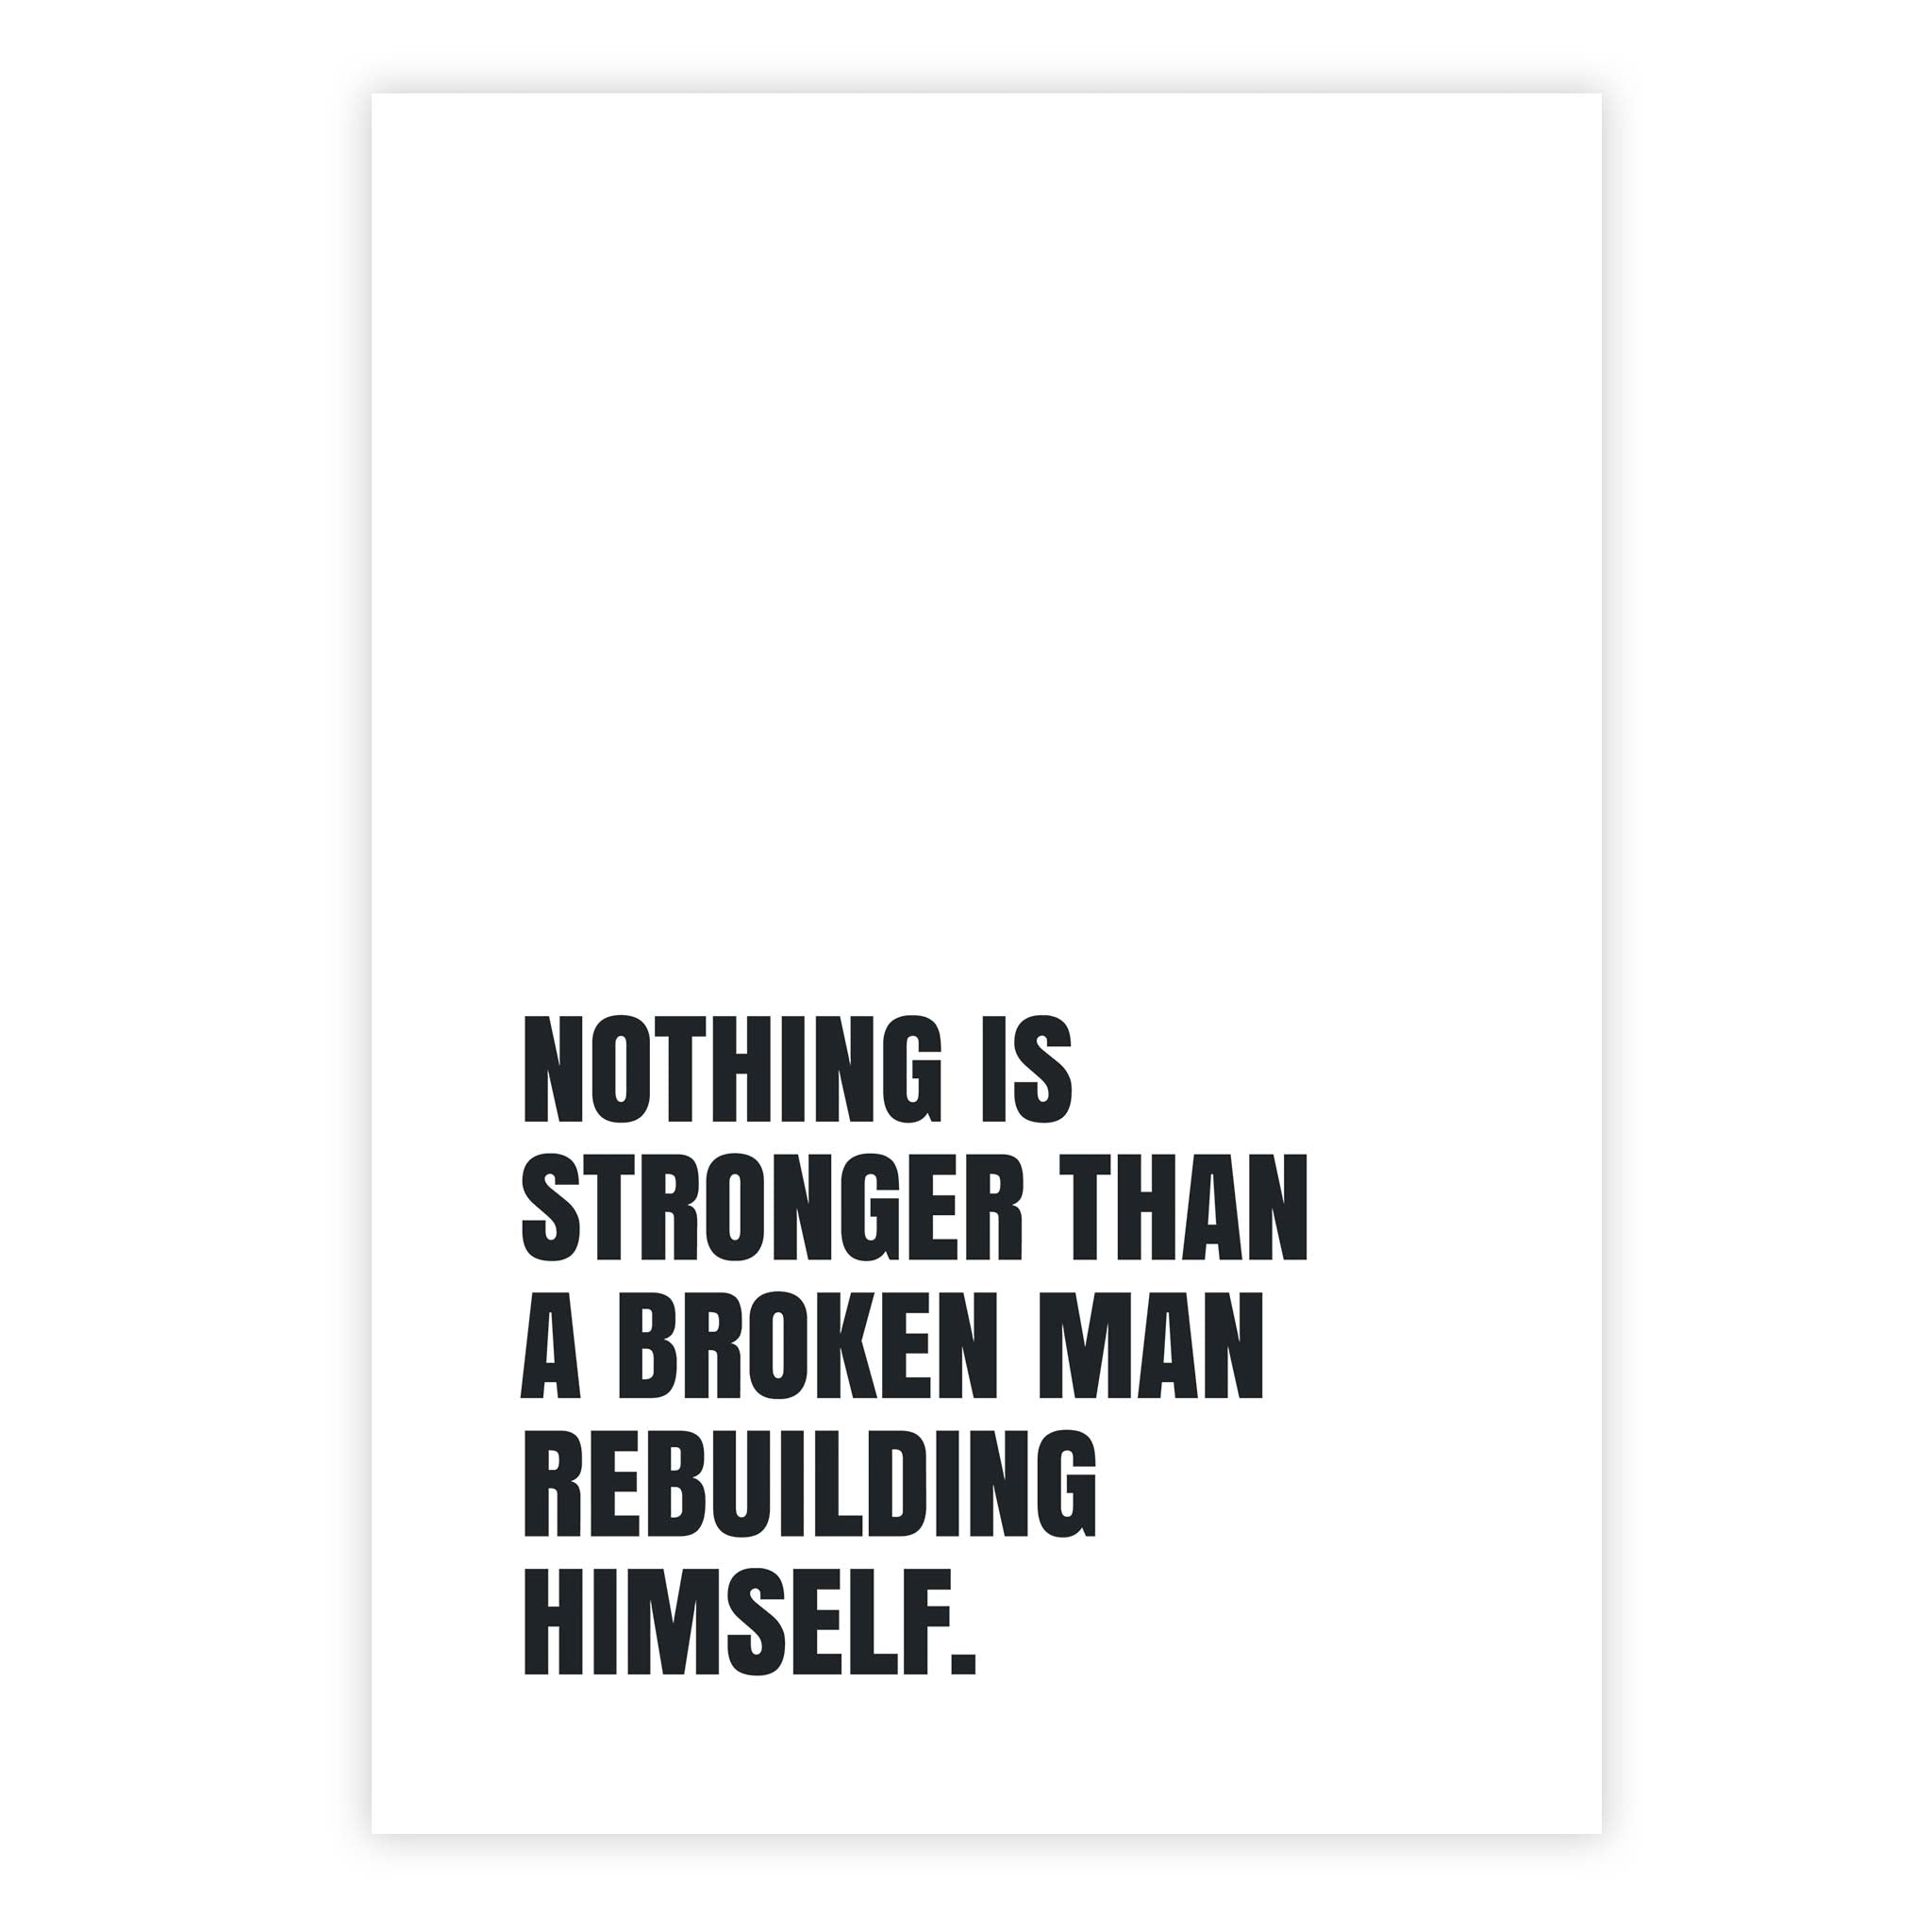 Nothing is stronger than a broken man rebuilding himself